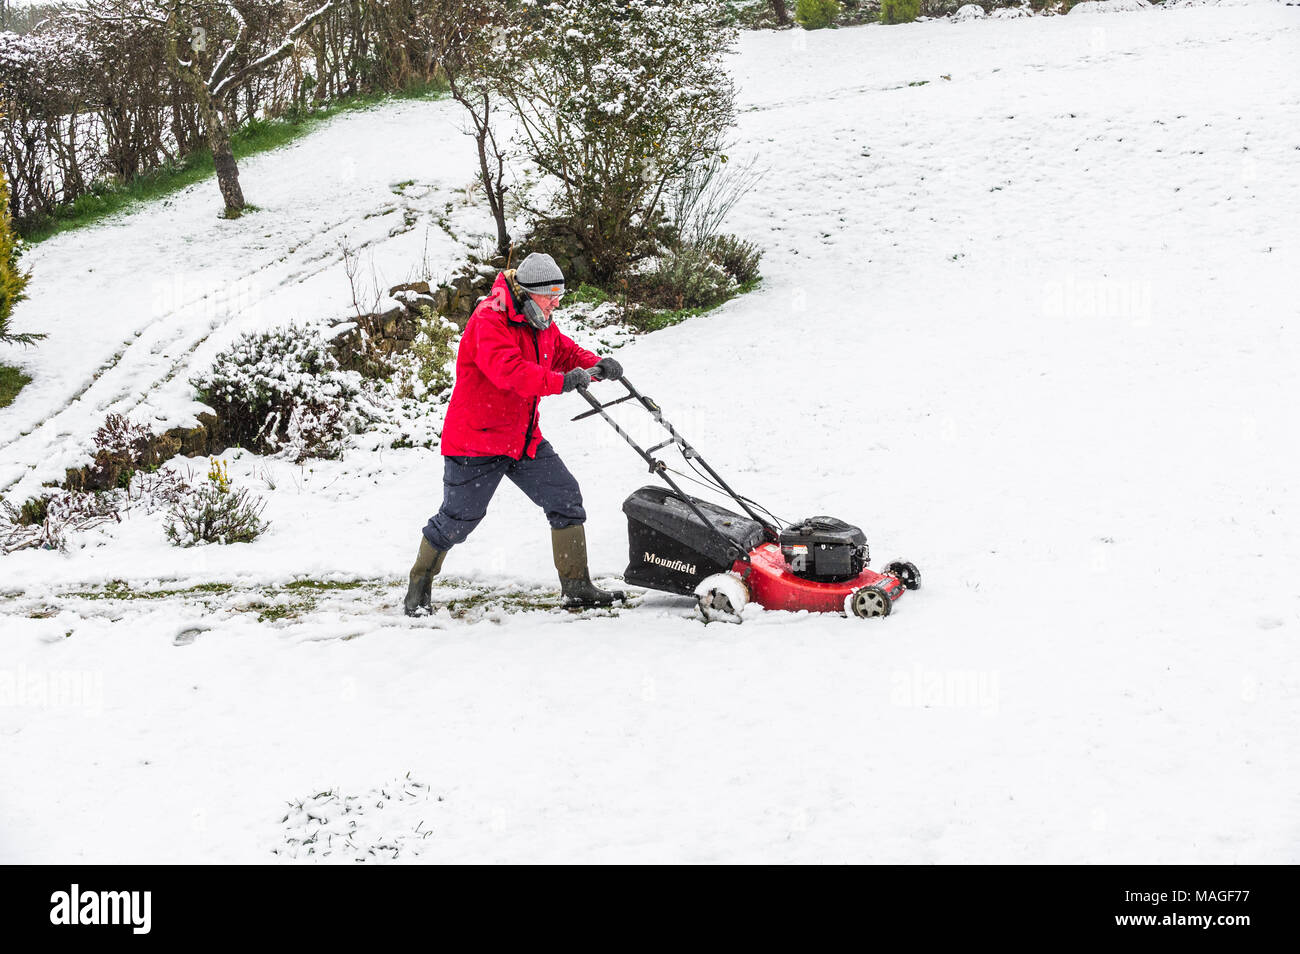 Mansfield, England. 2nd Apr, 2018. UK Weather: 2nd. April 2018.  Its Spring and the grass needs cutting. Over night snow covers large parts of the East Midlands as it moves north followed by rain. Credit: Alan Keith Beastall/Alamy Live News - Stock Image